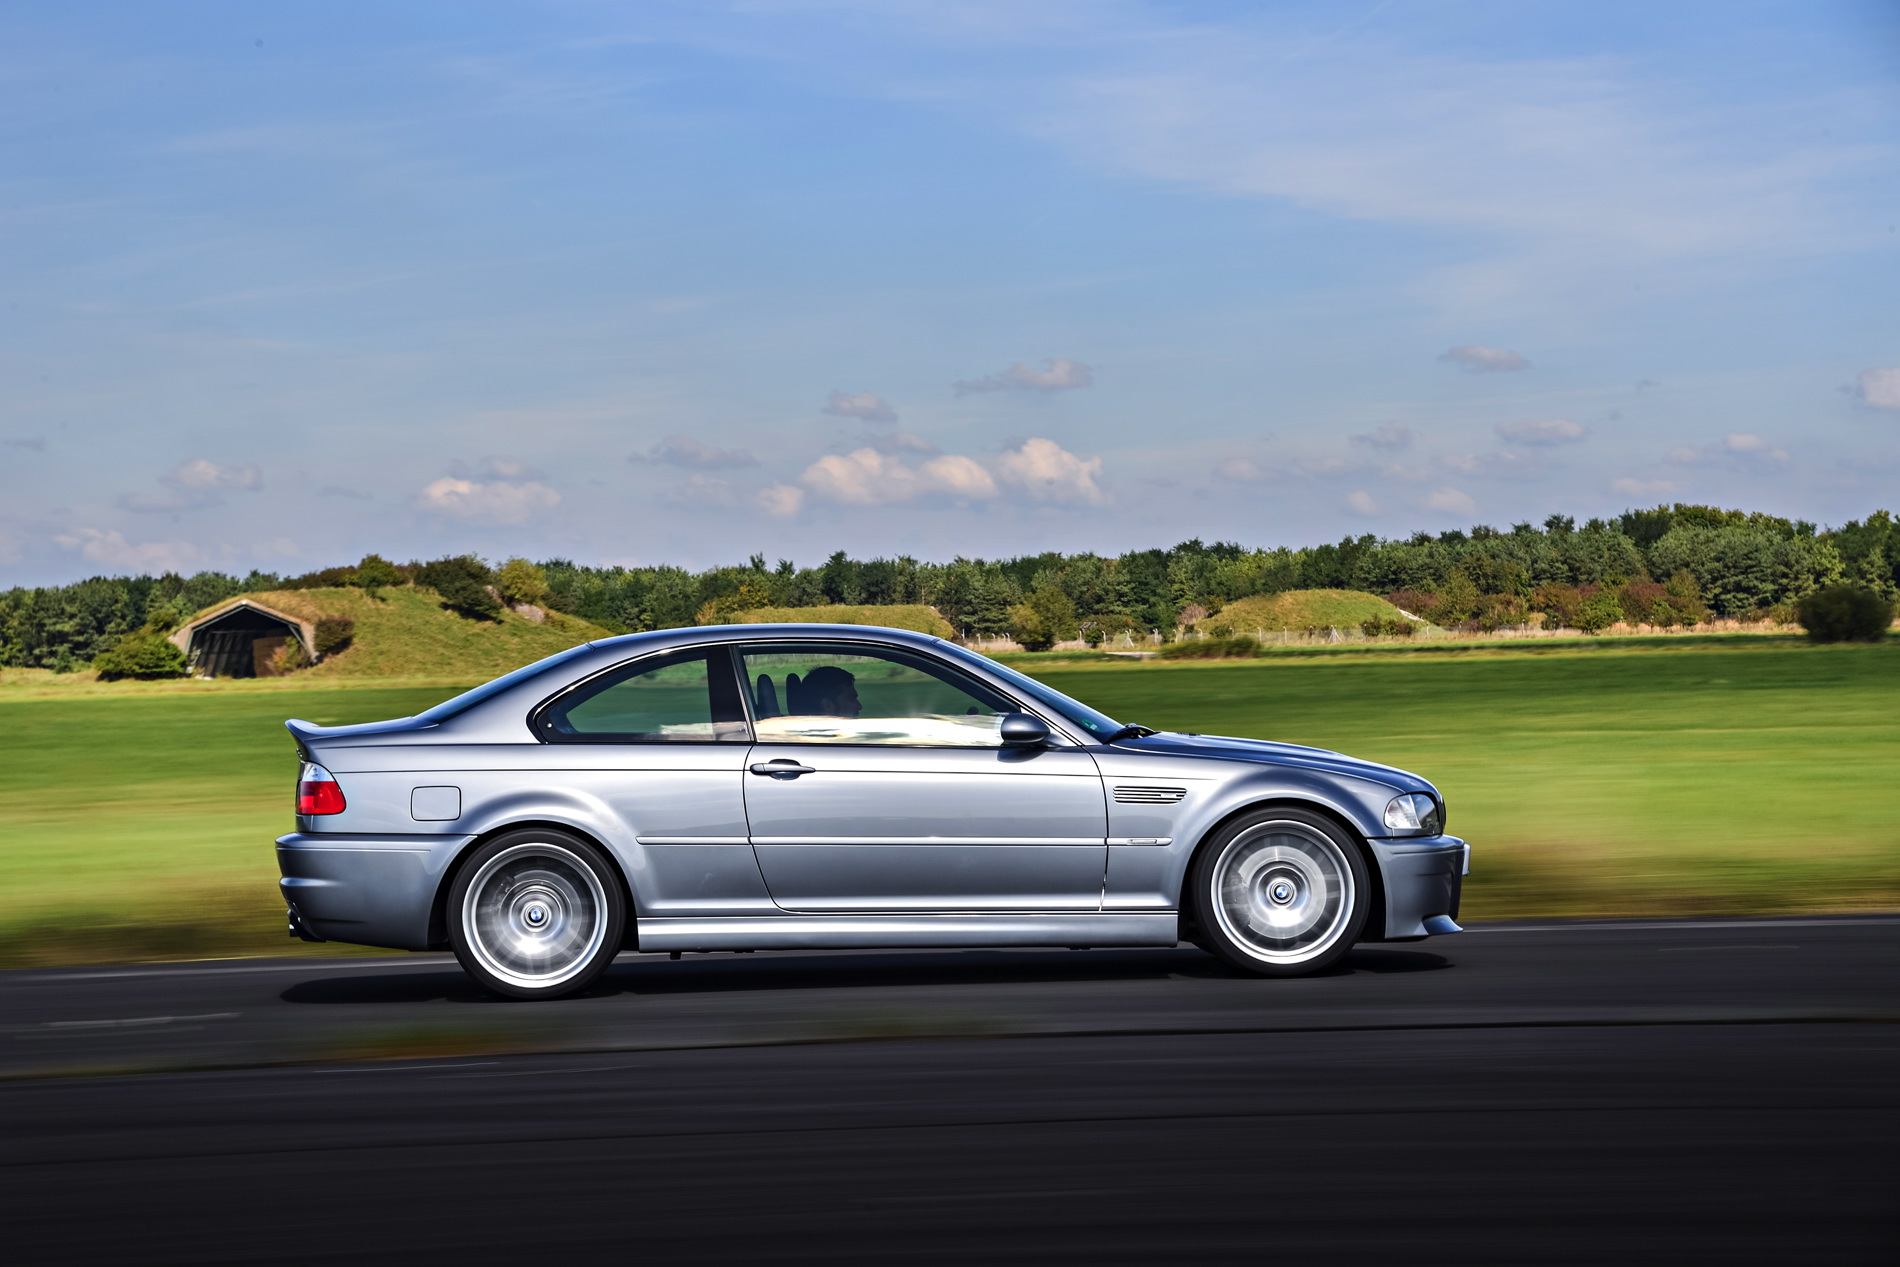 9,000-mile 2004 BMW E46 M3 CSL Heading for Auction